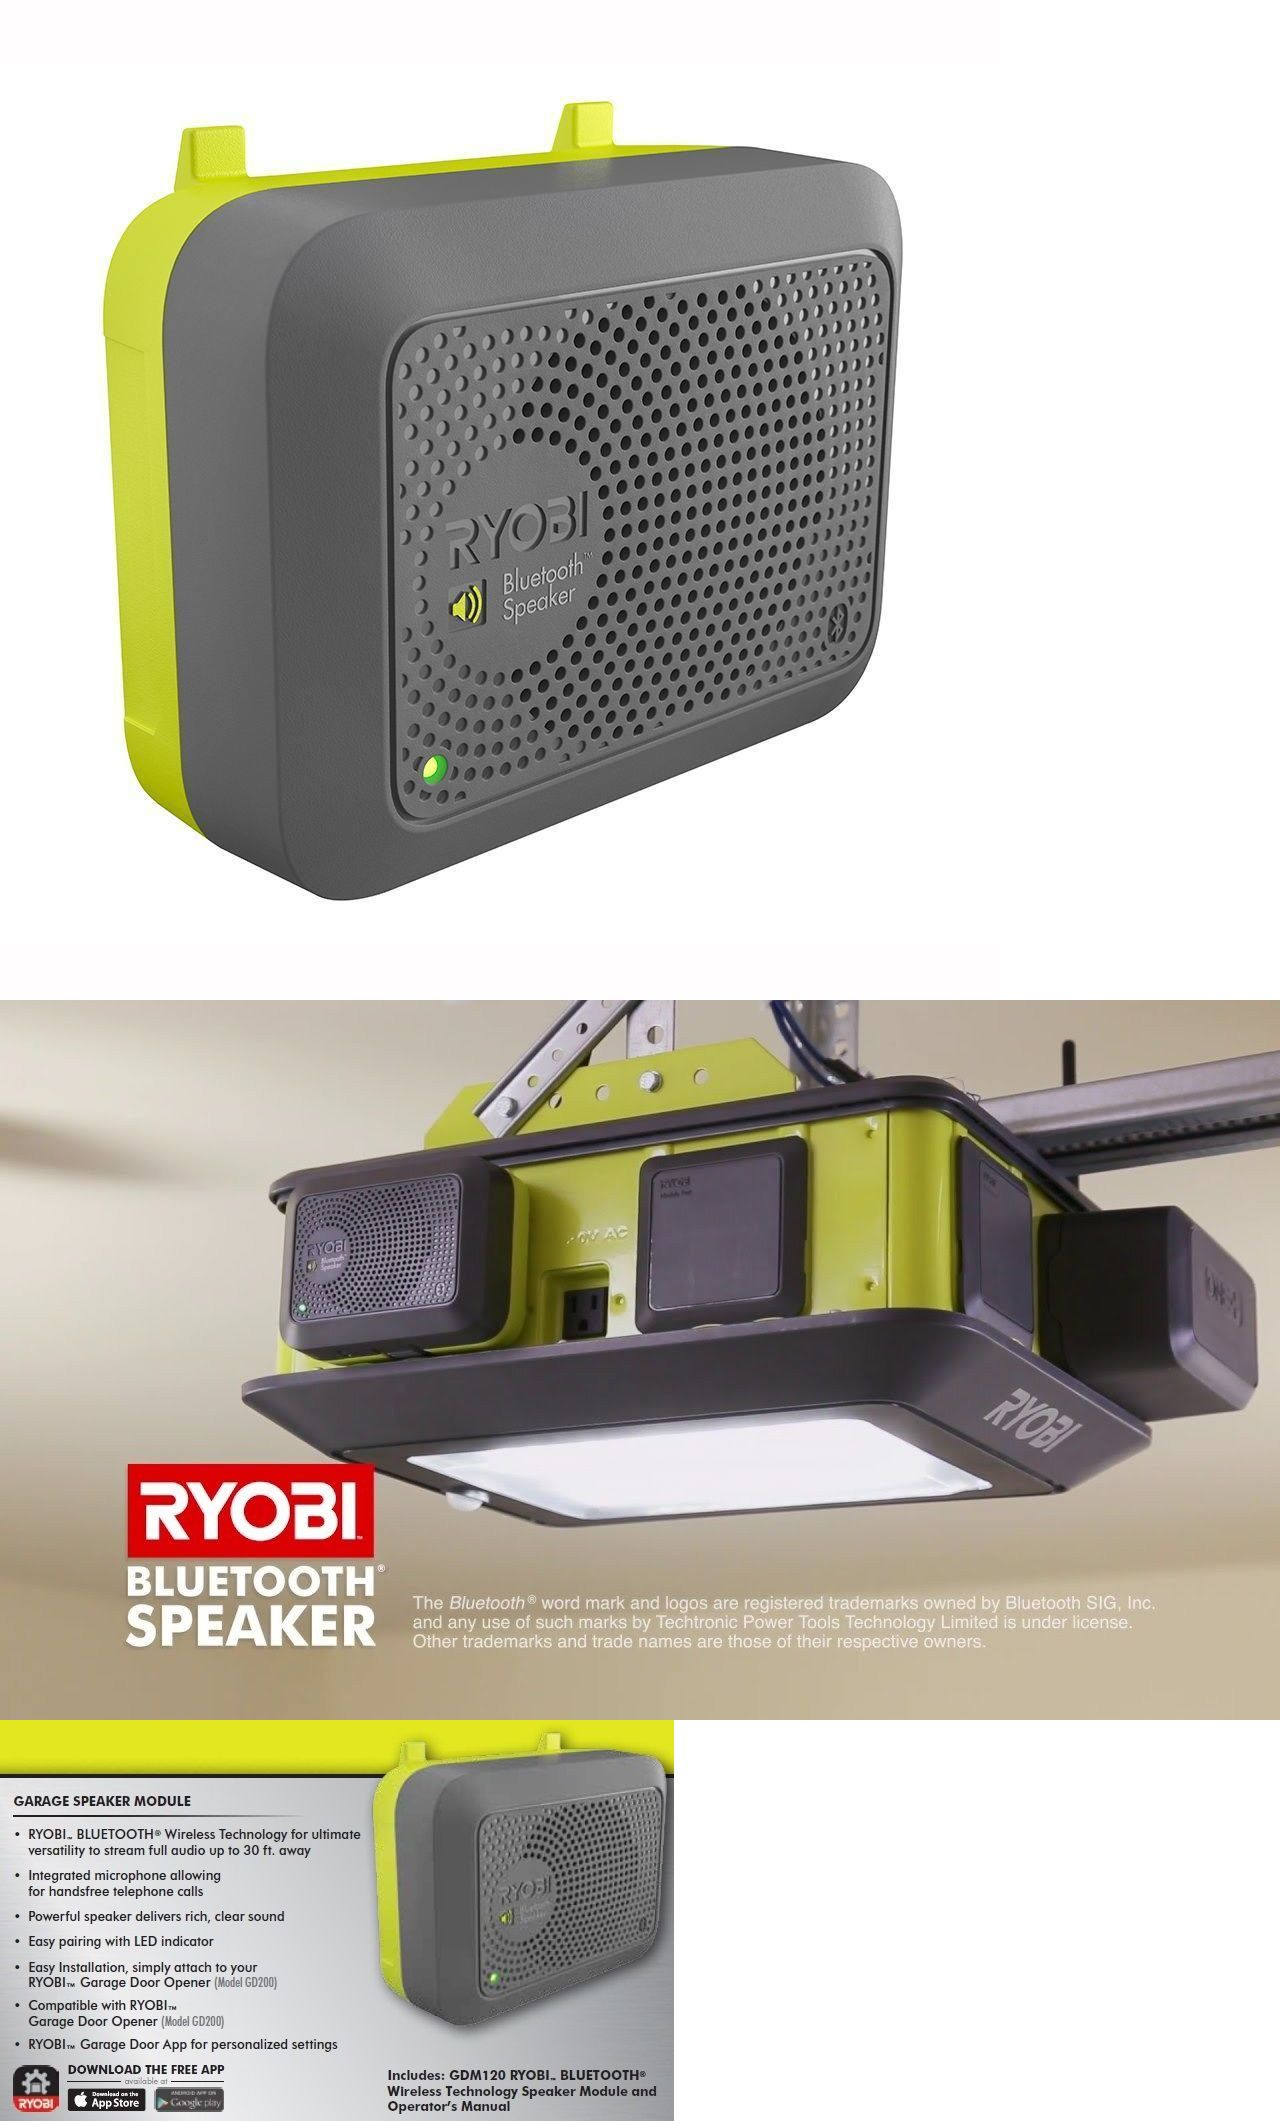 hight resolution of garage door parts and accs 179687 ryobi bluetooth speaker accessory led indicator garage doors openers